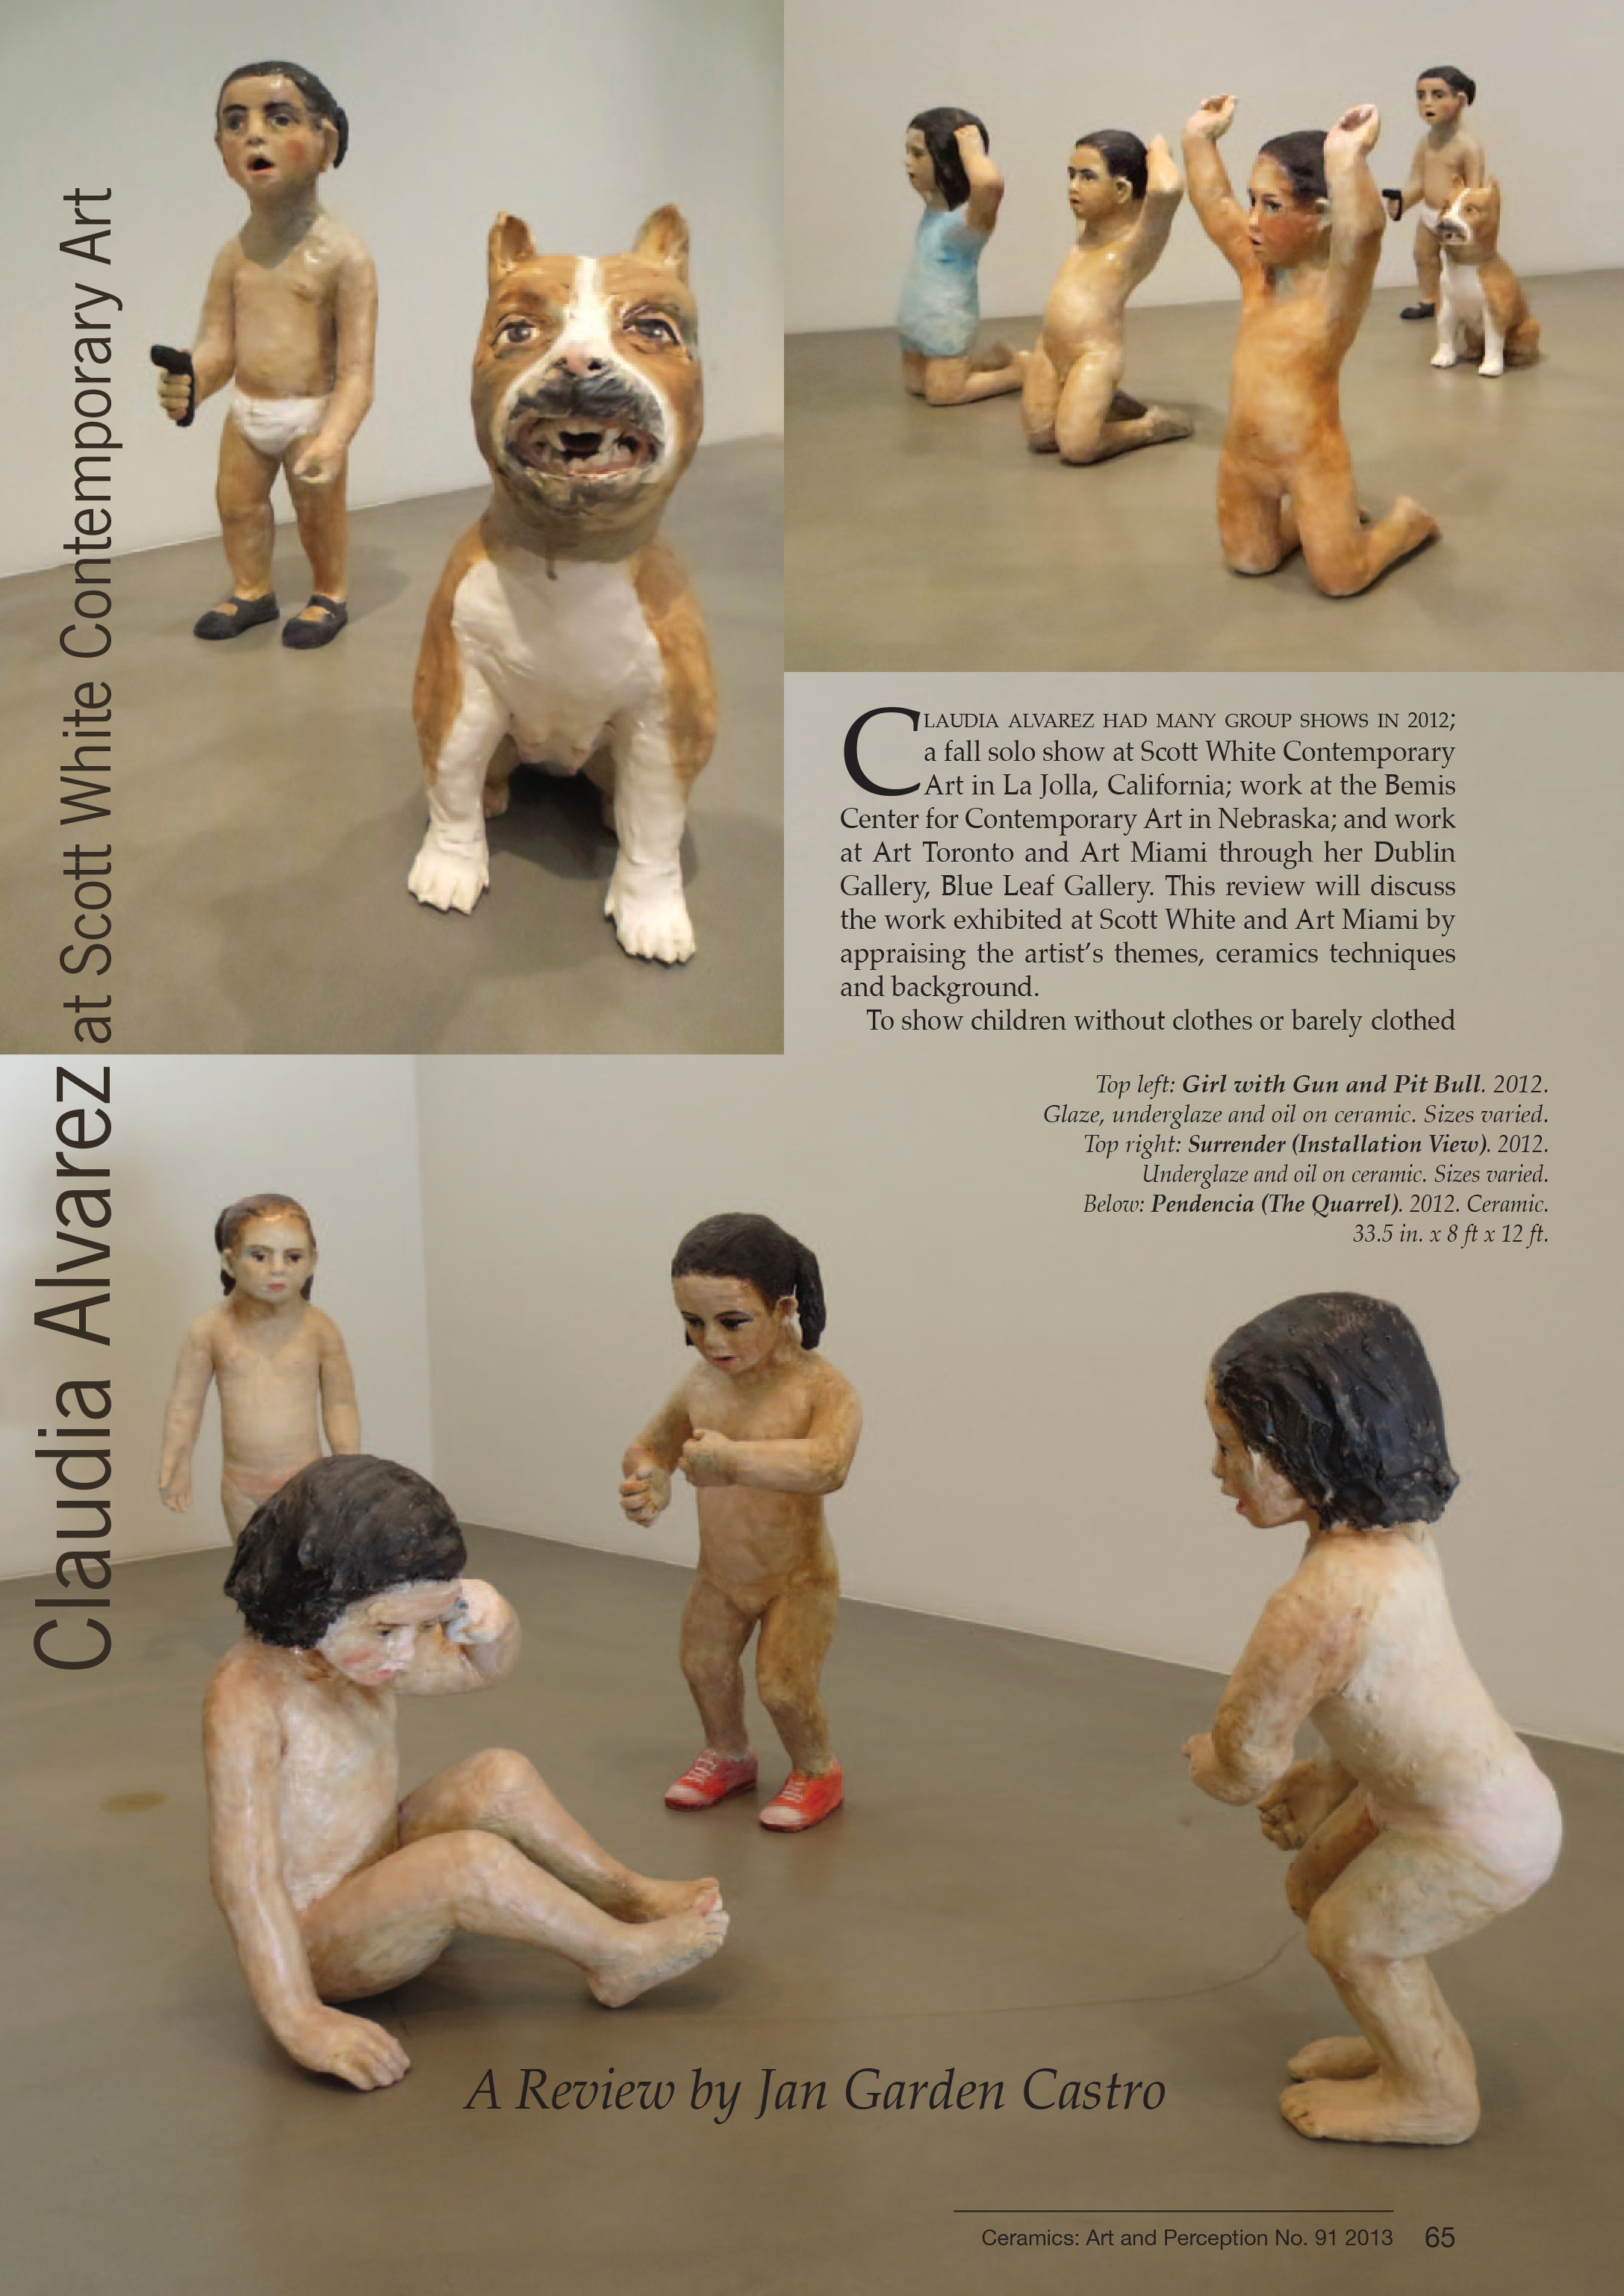 Claudia_Alvarez_Ceramics.March.2013-1.jpg